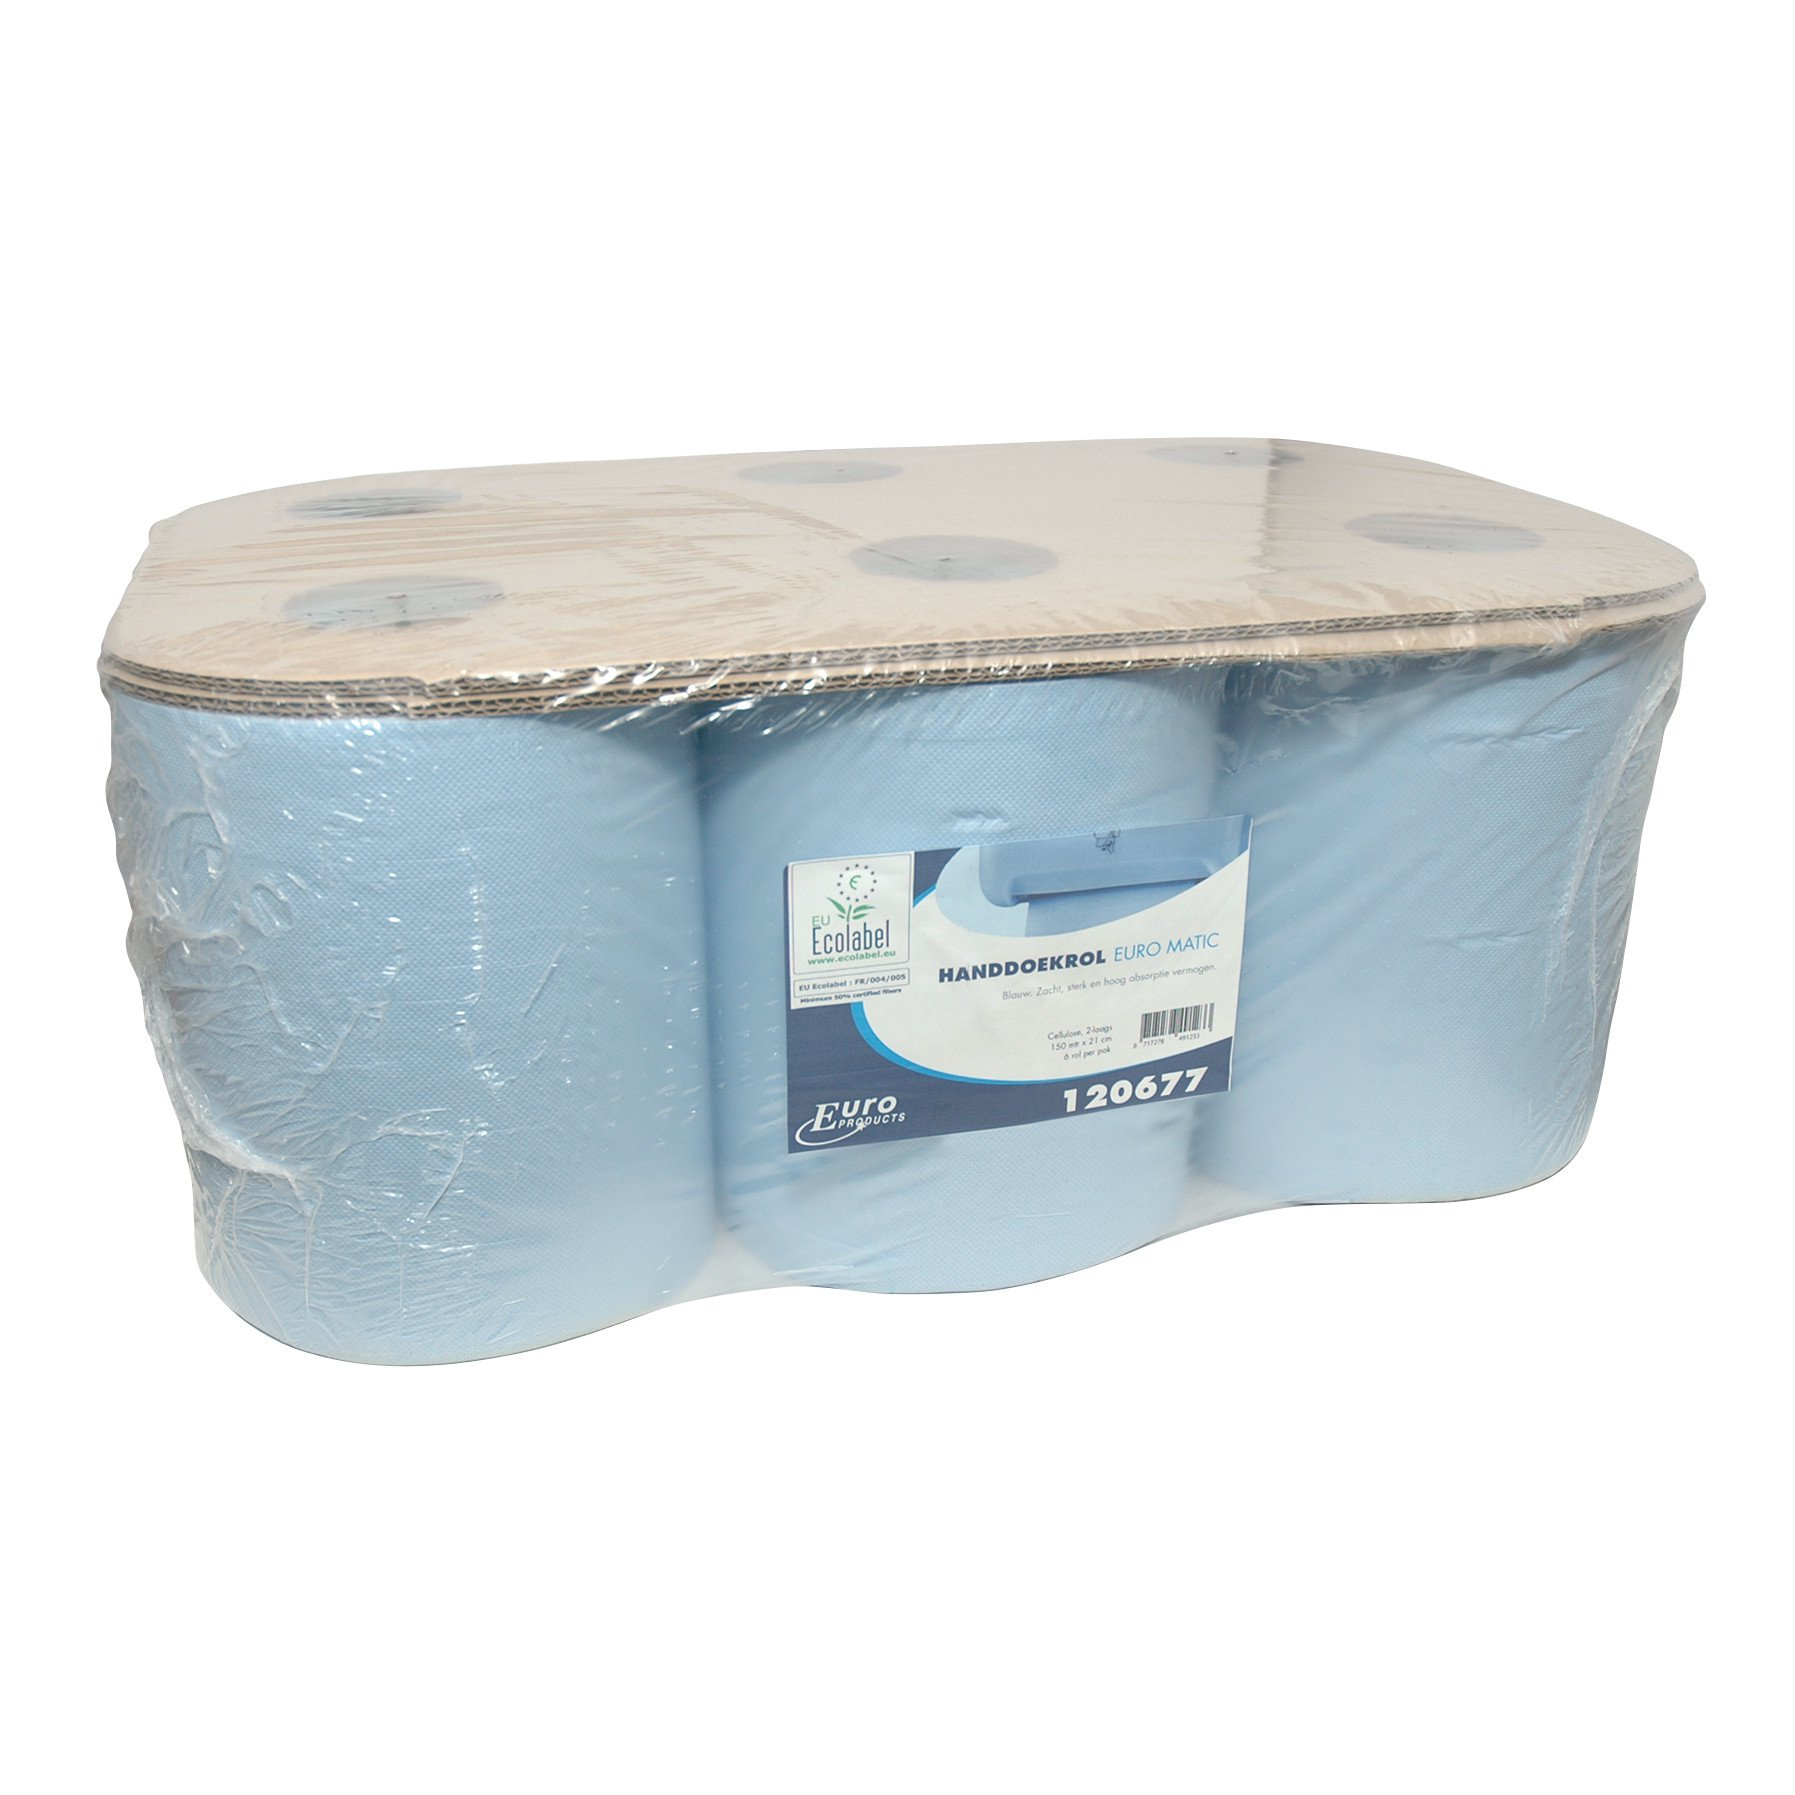 Euro Products | Handdoekrol | Euro Matic | 2-laags | Blauw | 6 x 150 meter